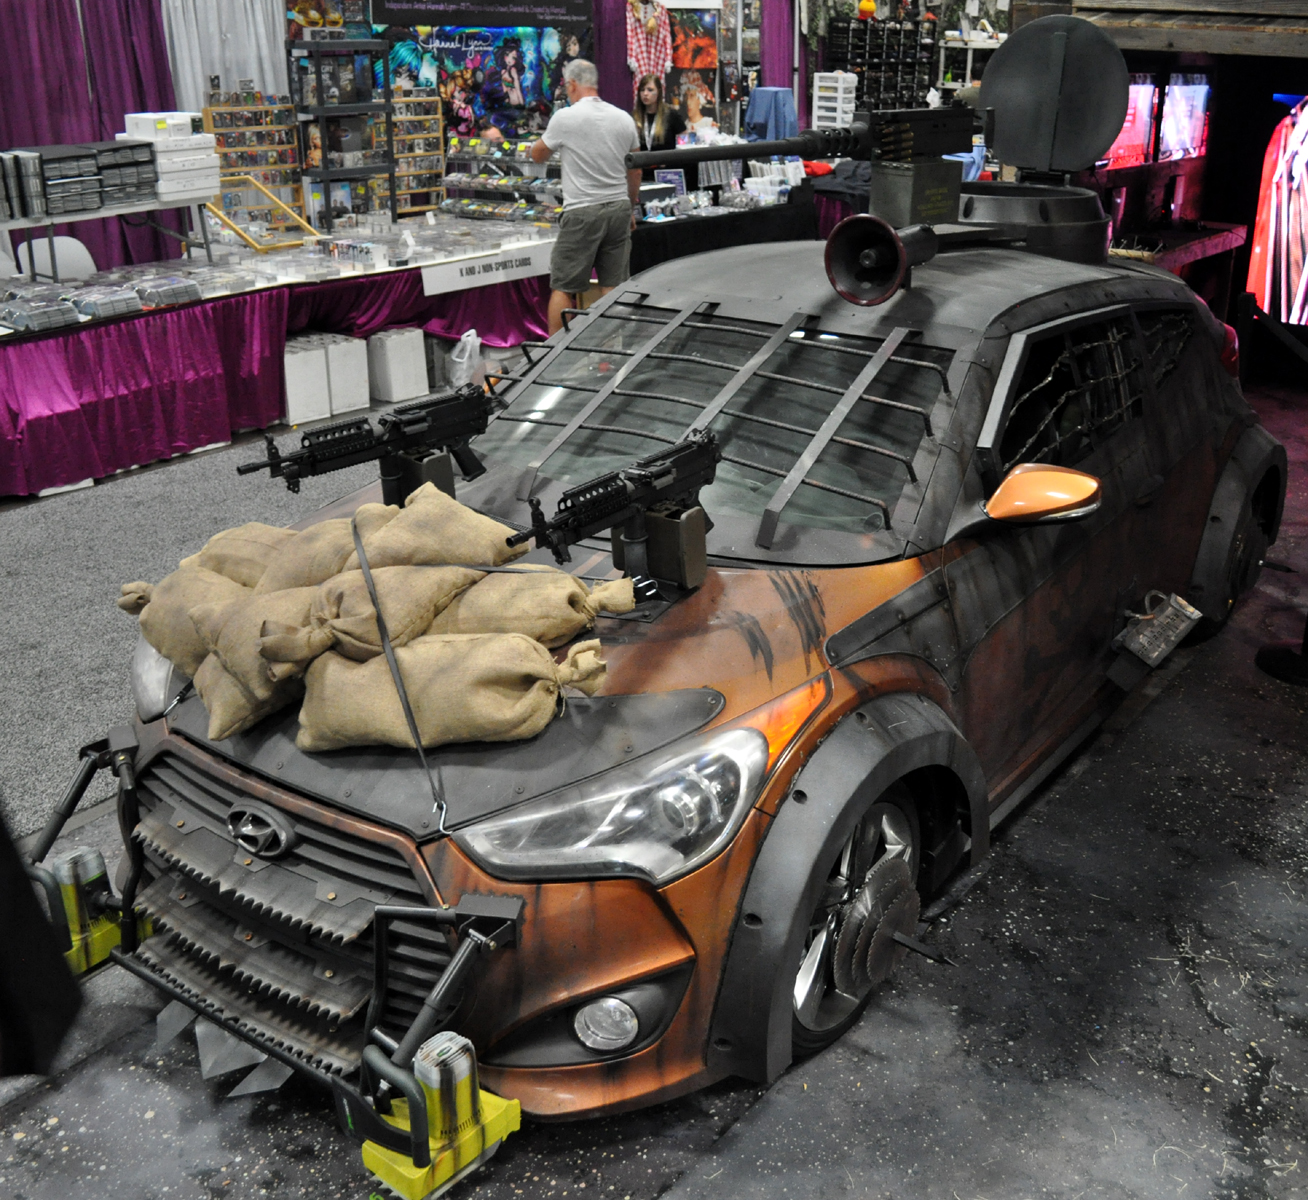 Kkr Theme Ringtone Song 2017 Download: Photo Booth Killer: I Found The Veloster At Comic Con ( No